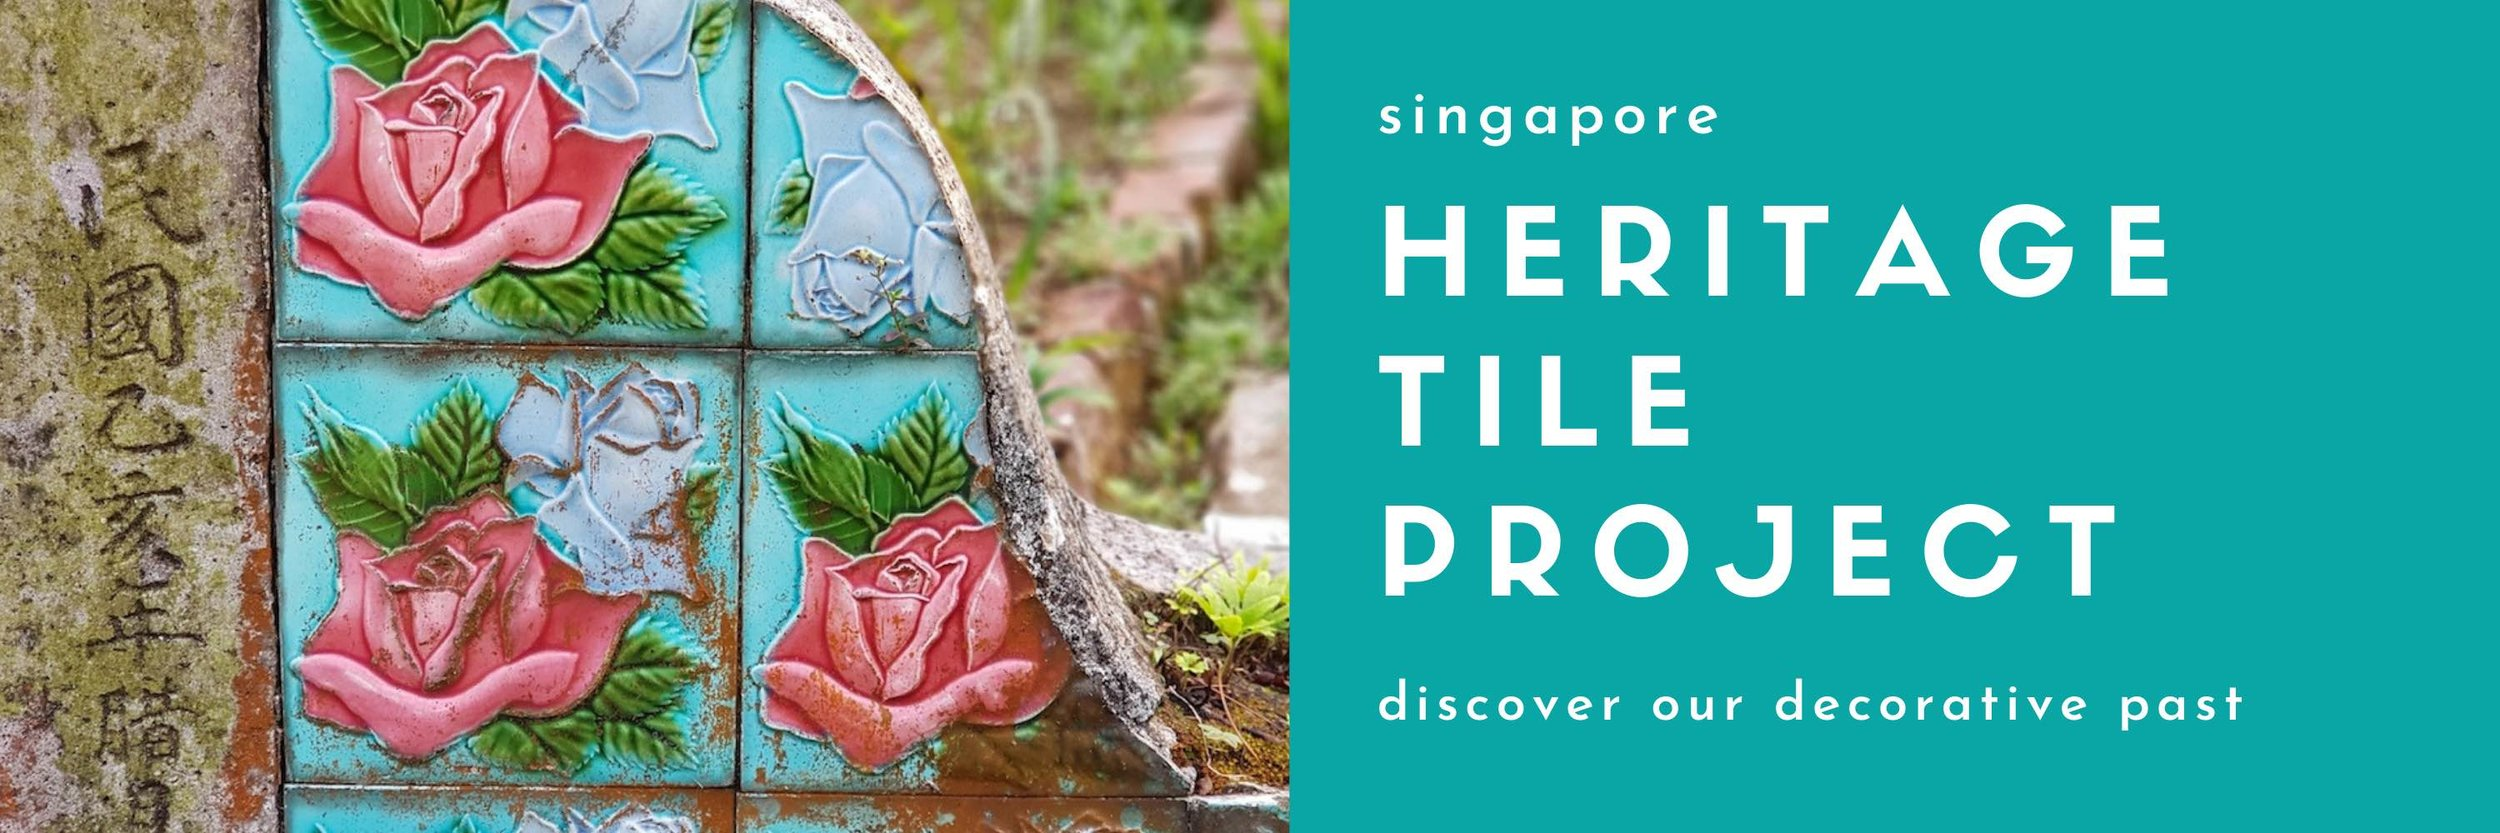 Learn more about my project to showcase Singapore's decorative past